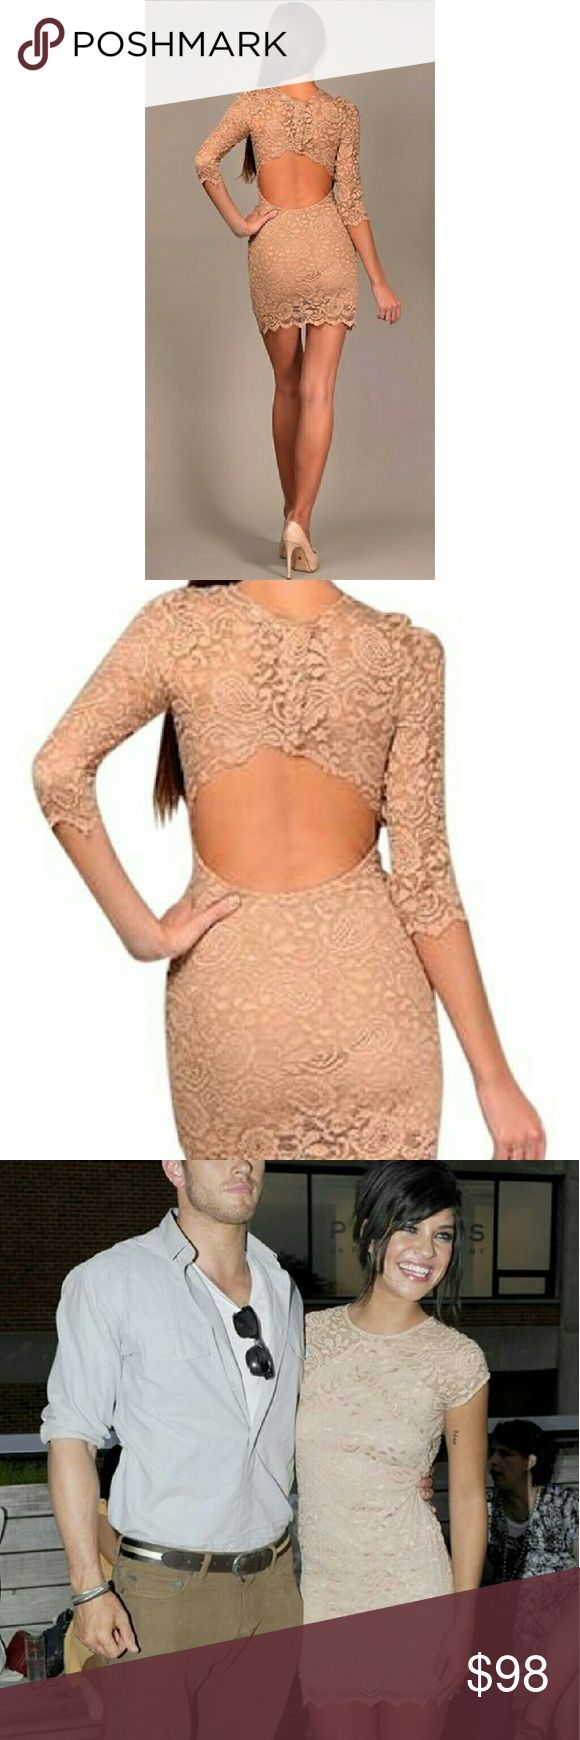 GILBER GILMORE NIGHT CAP NUDE BEIGE LACE DRESS MED Night cap nude lace backless dress as seen on Nicki minaj and Jessica szohr. Size medium. Purchased at Big Drop Boutique NYC UES. Gilber Gilmore Dresses Backless